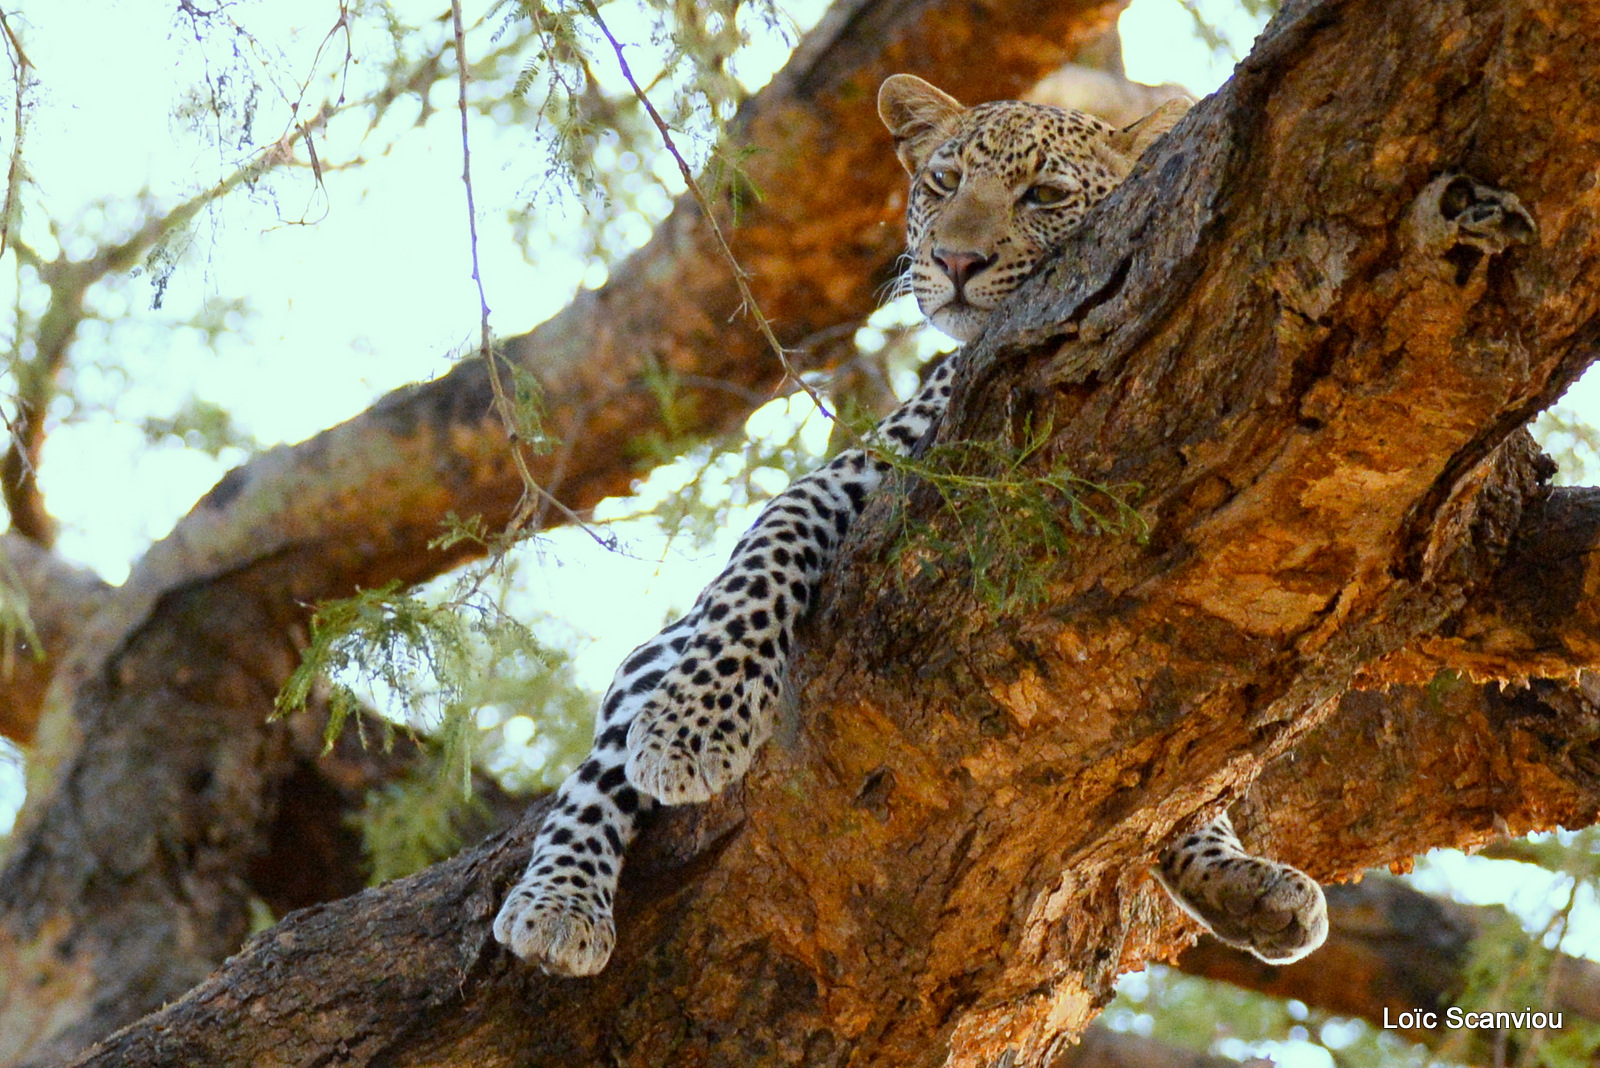 Léopard dans un arbre/Leopard on a tree (6)